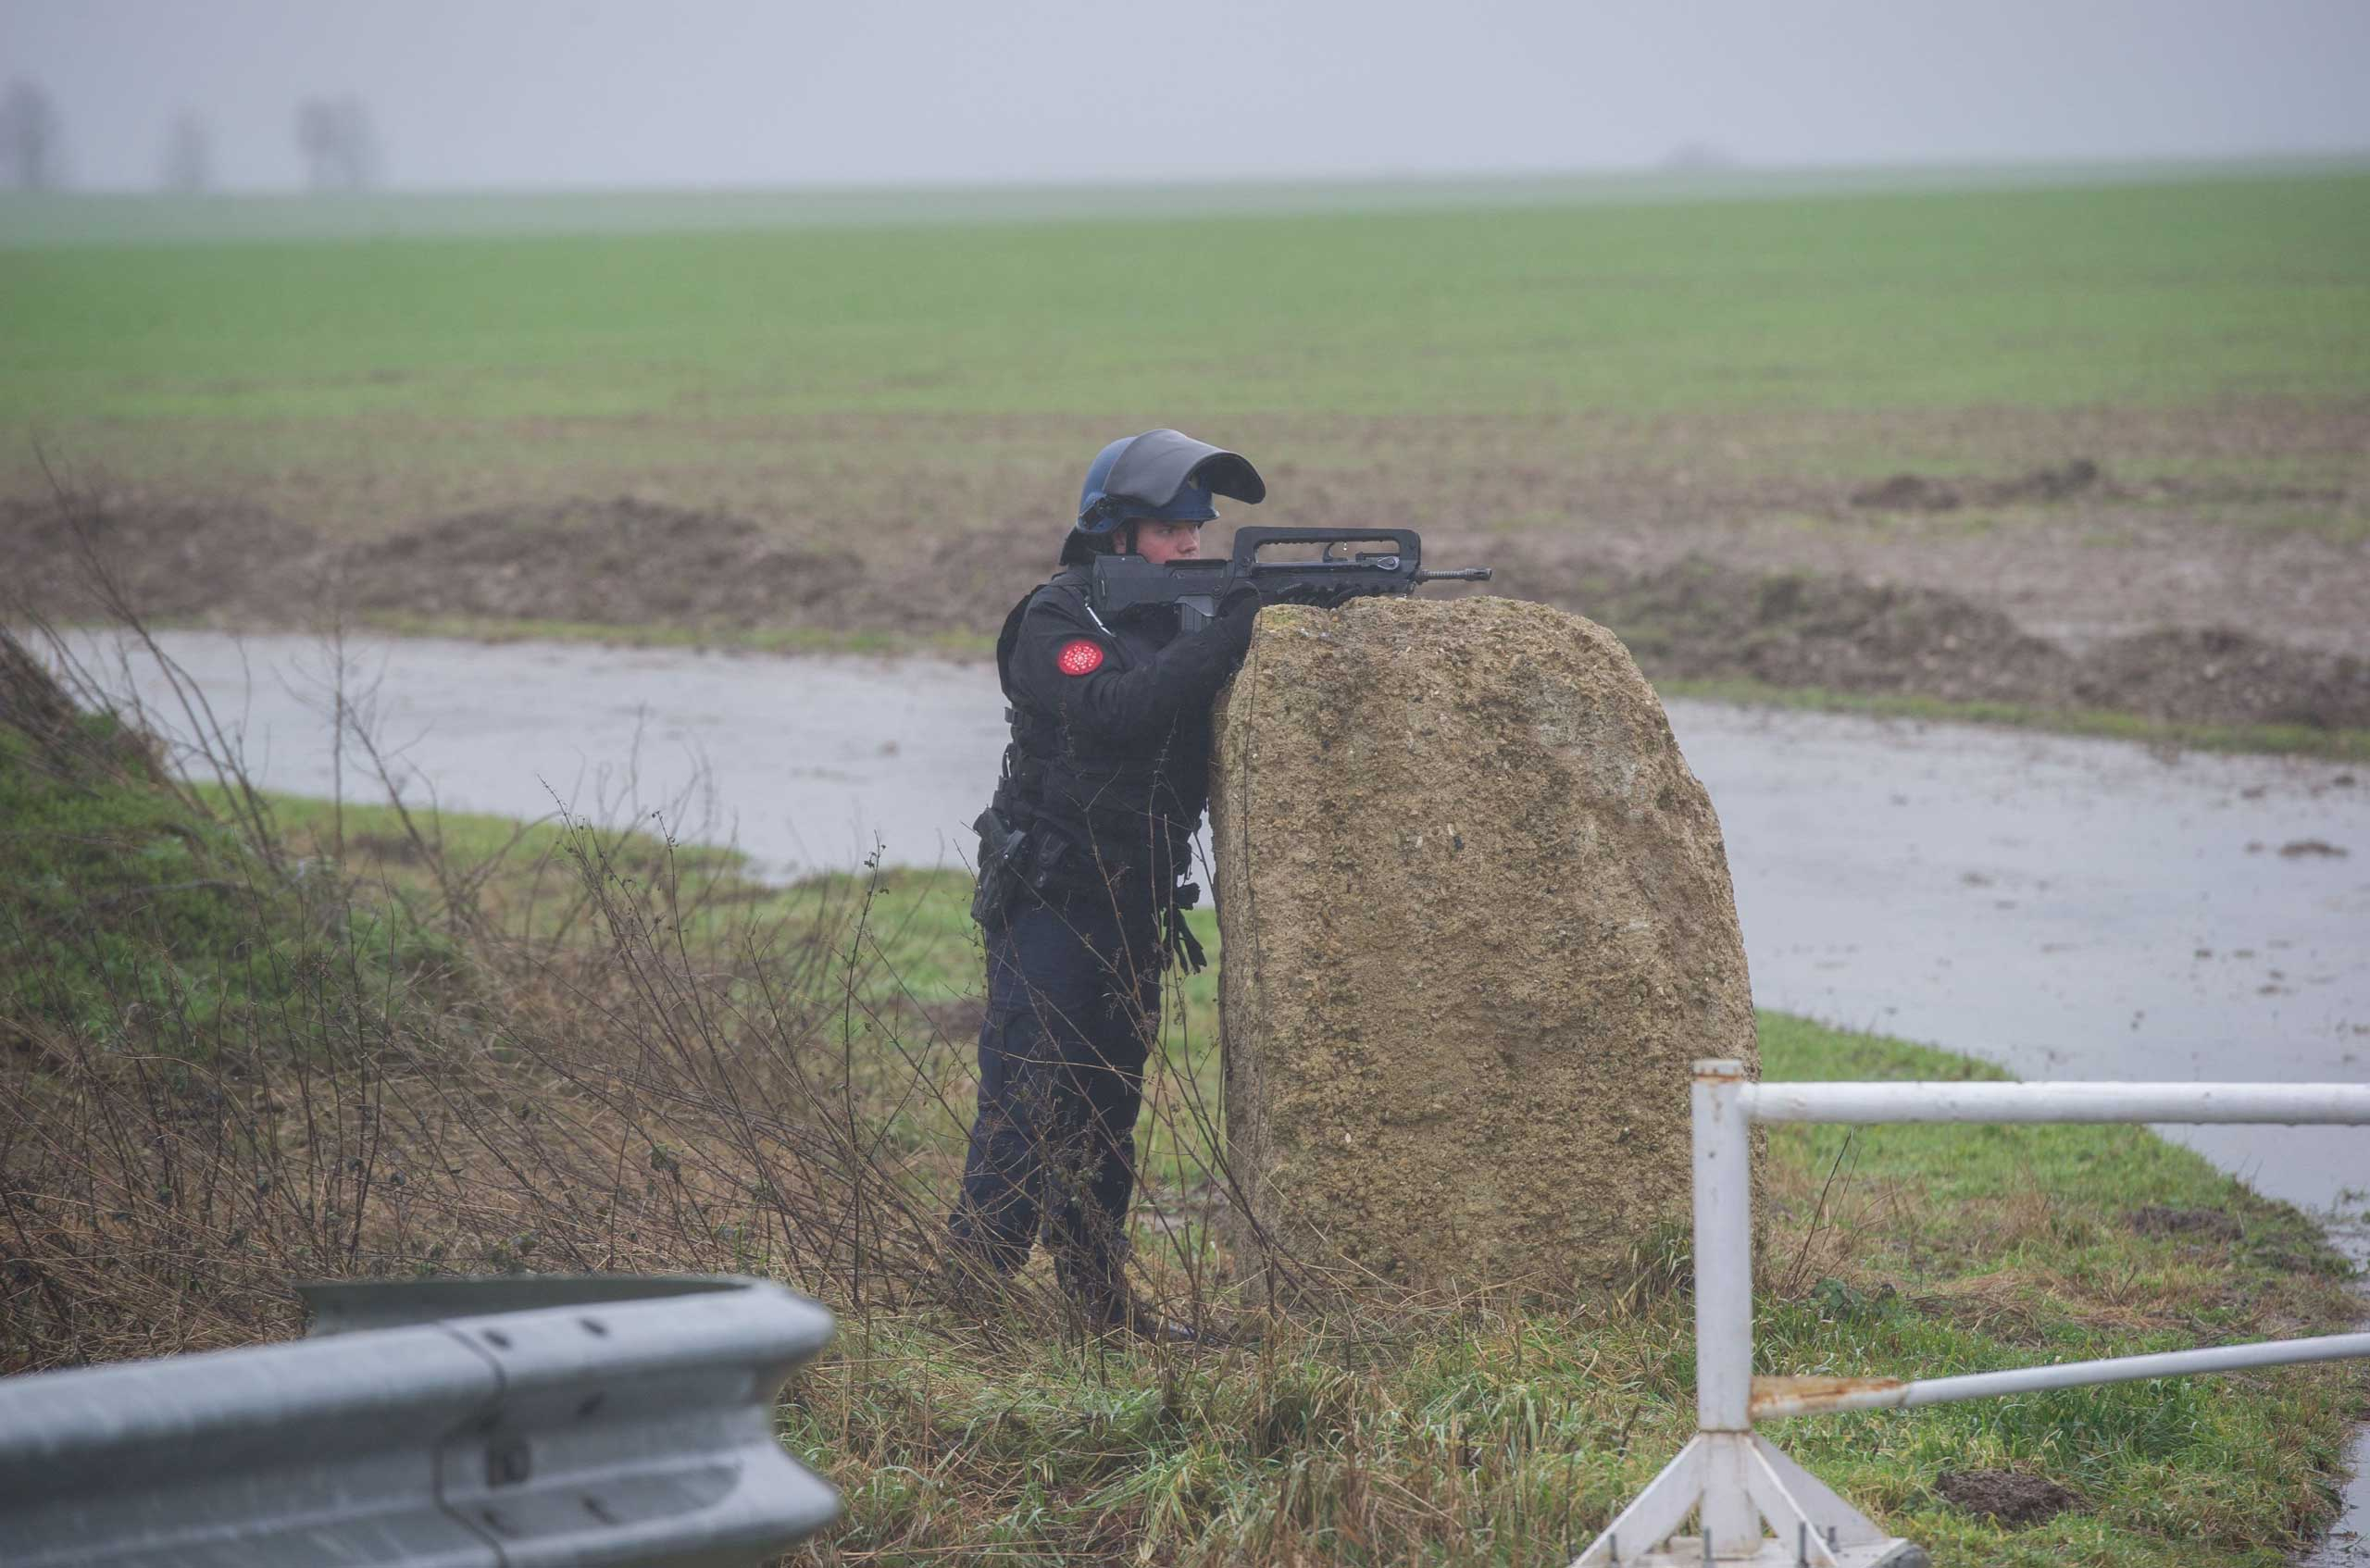 French police officers patrol in Dammartin-en-Goele where two brothers suspected of slaughtering 12 people in an Islamist attack on French satirical newspaper Charlie Hebdo held one person hostage as police cornered the gunmen, on Jan. 9, 2015.